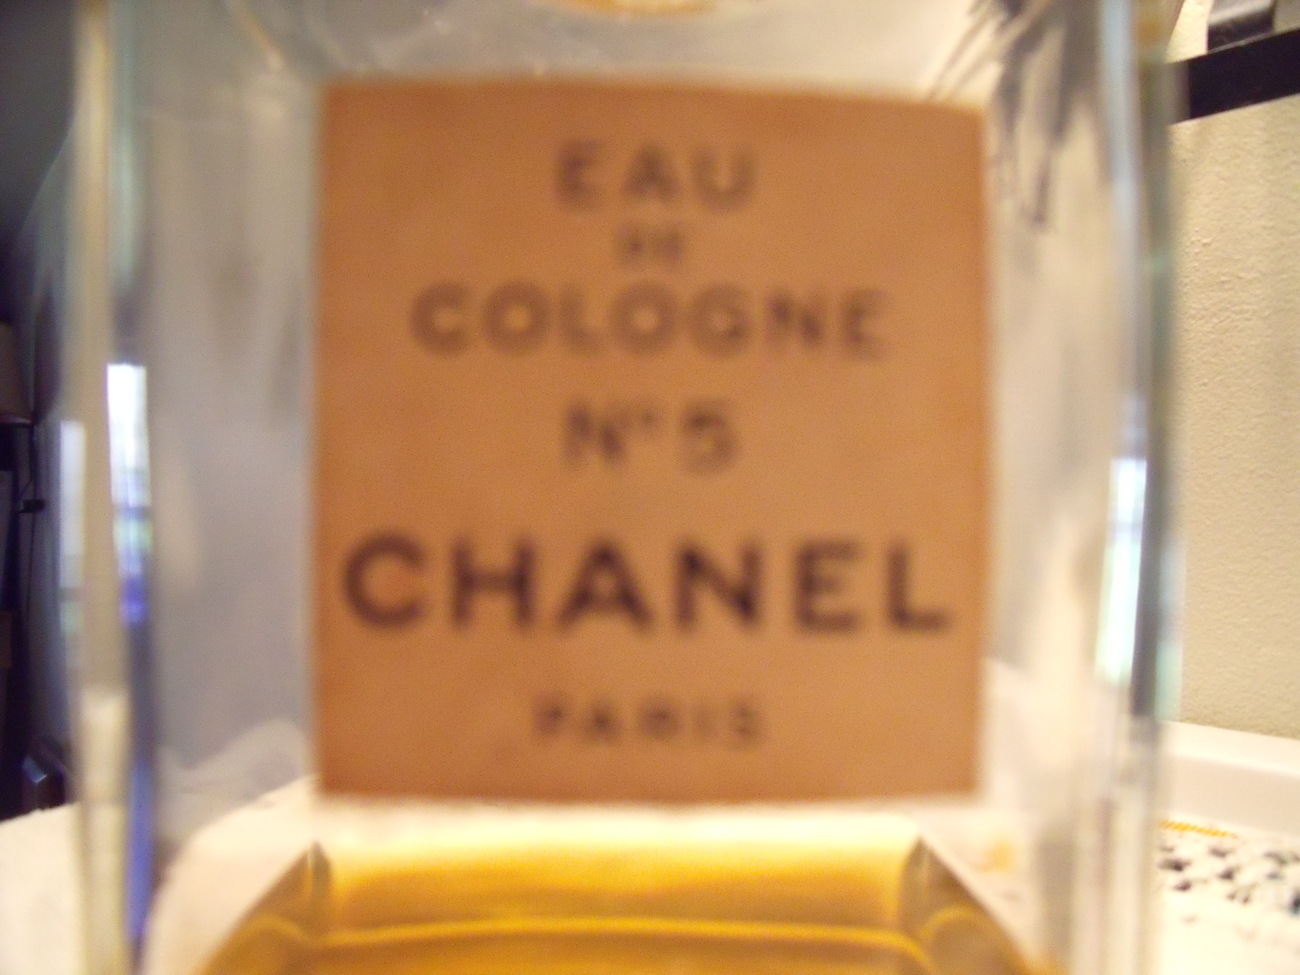 Chanel No. 5 eau de Cologne Paris Vintage Bottle